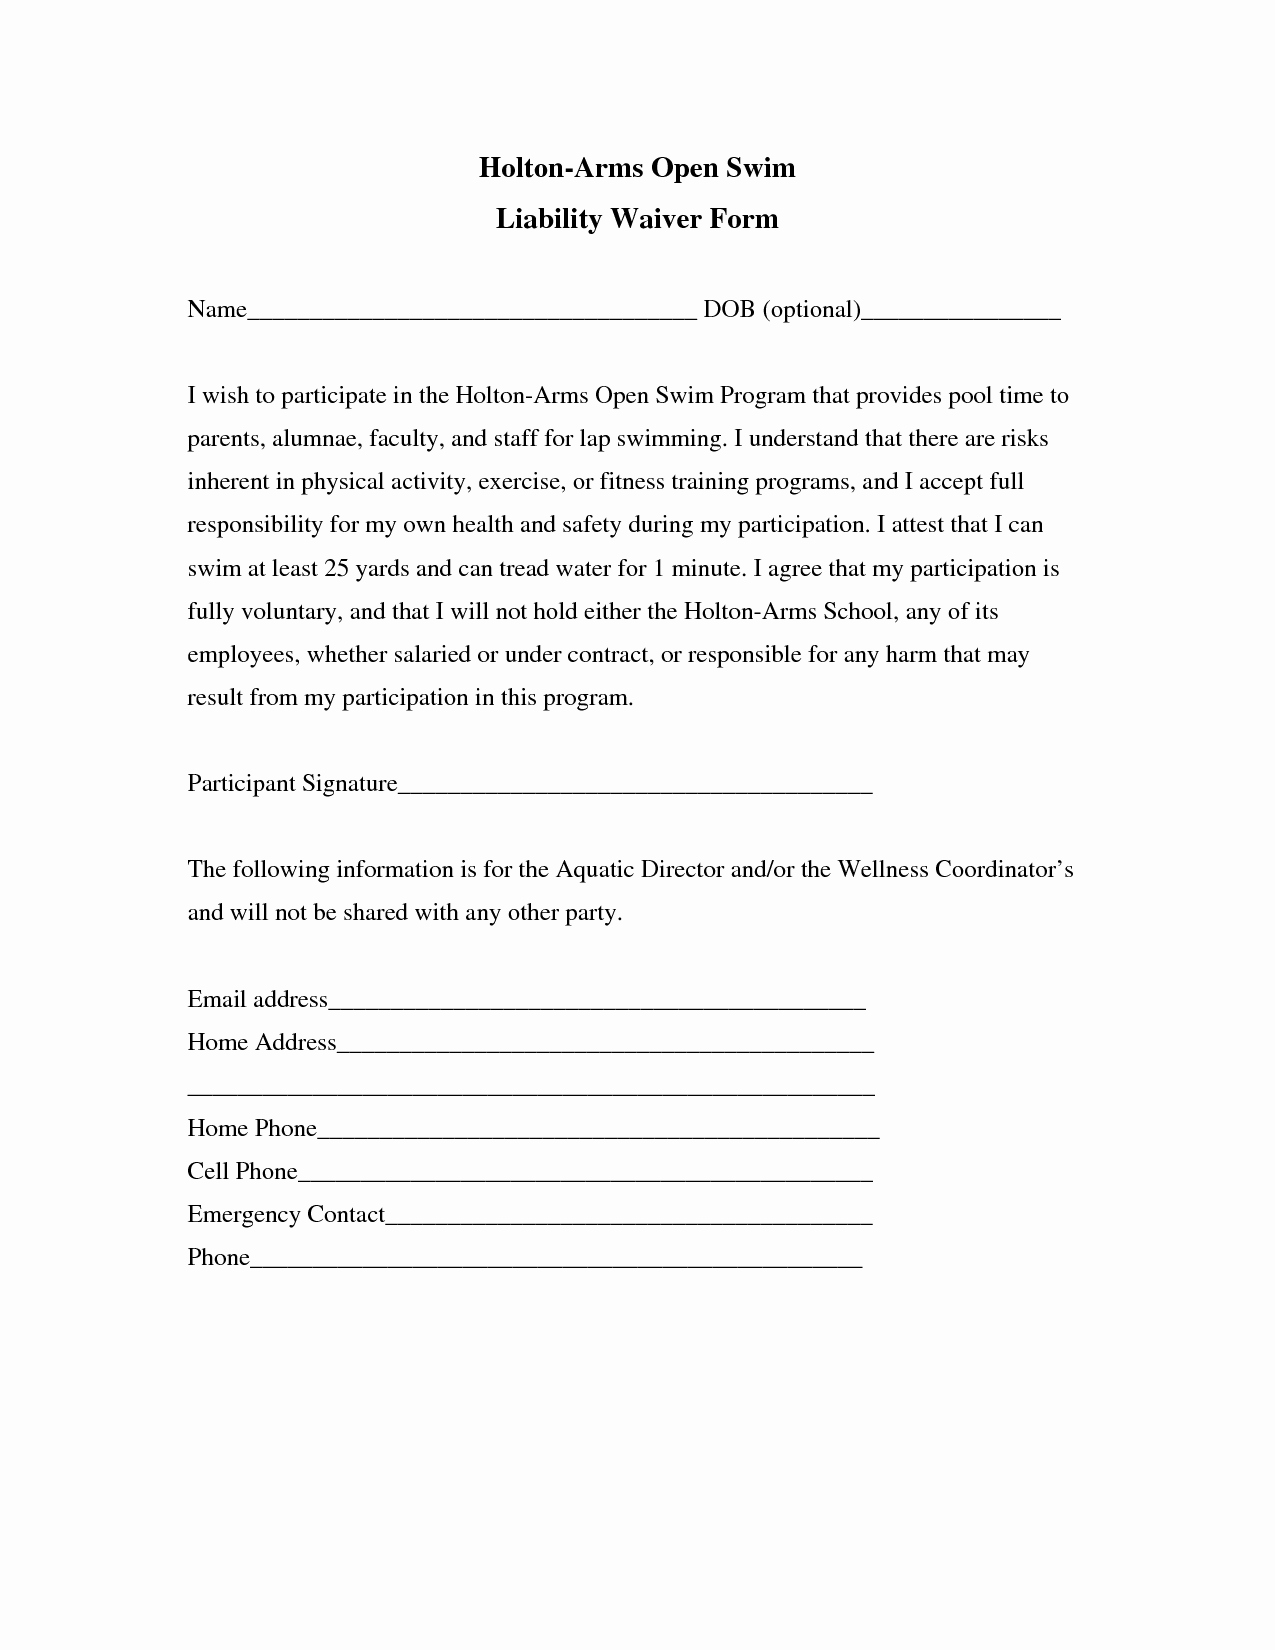 Client Print Release form Template New Liability Release form Template Free Printable Documents